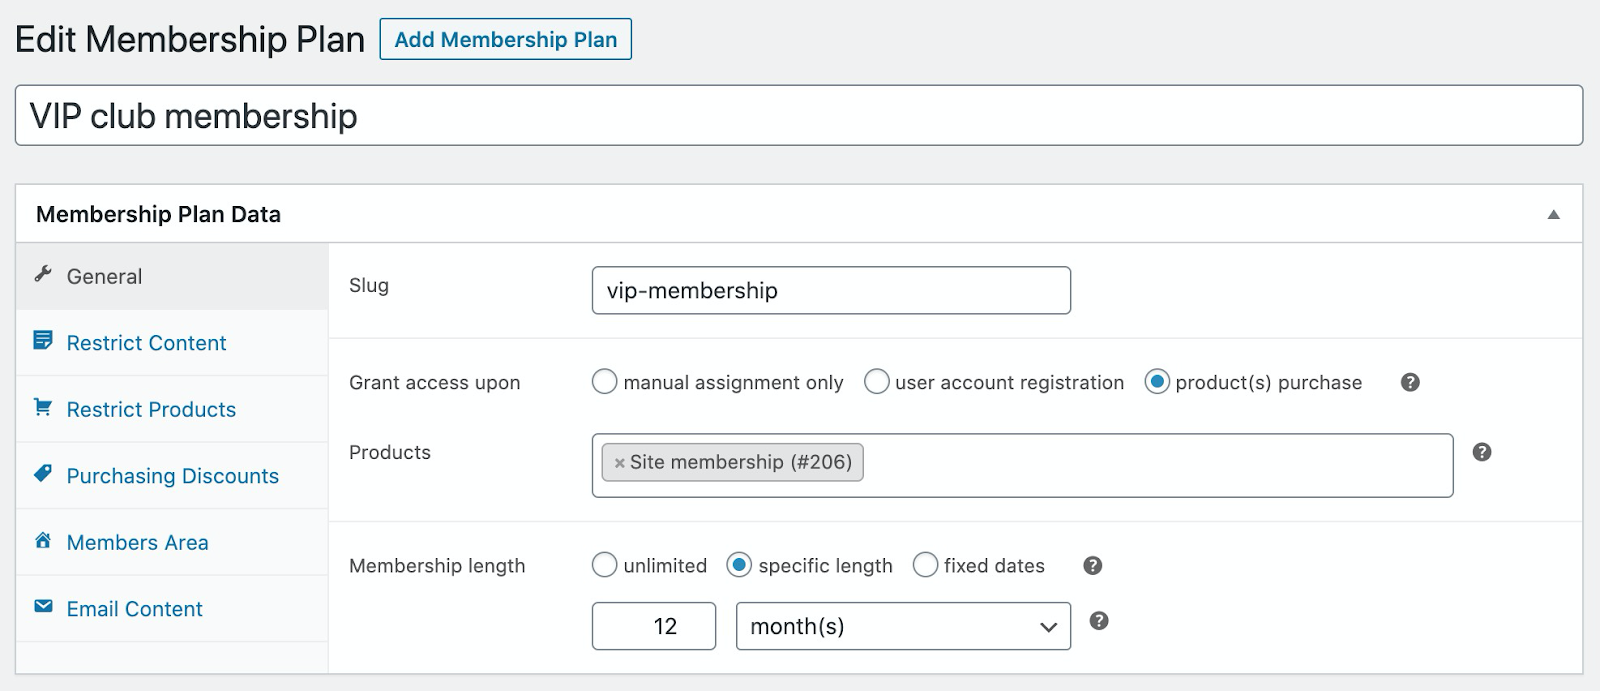 General settings for a membership plan, including how to grant access and membership length.